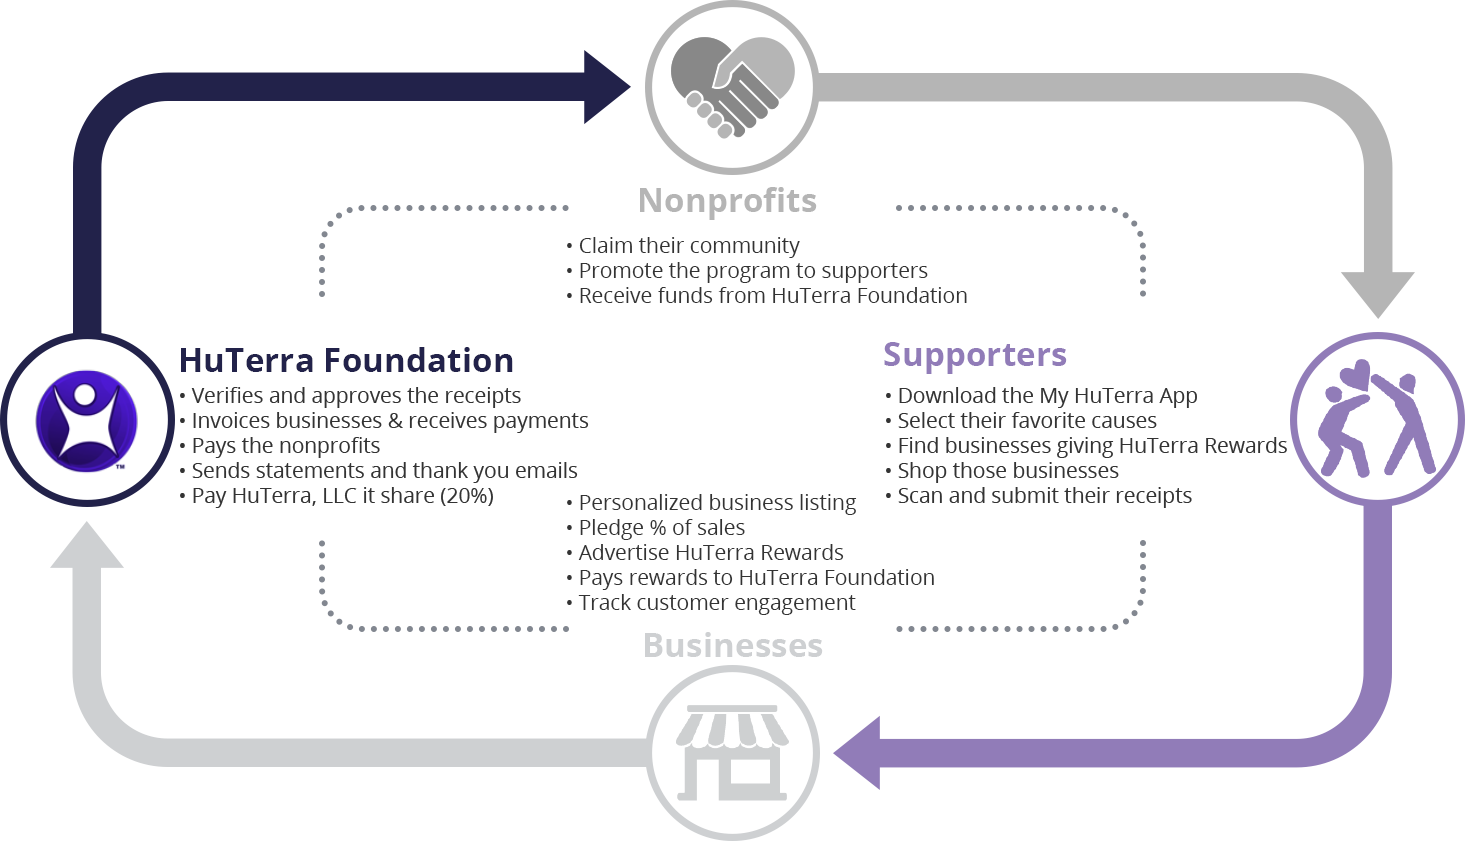 The HuTerra Rewards cycle includes the supporters, nonprofits, businesses and HuTerra Foundation.